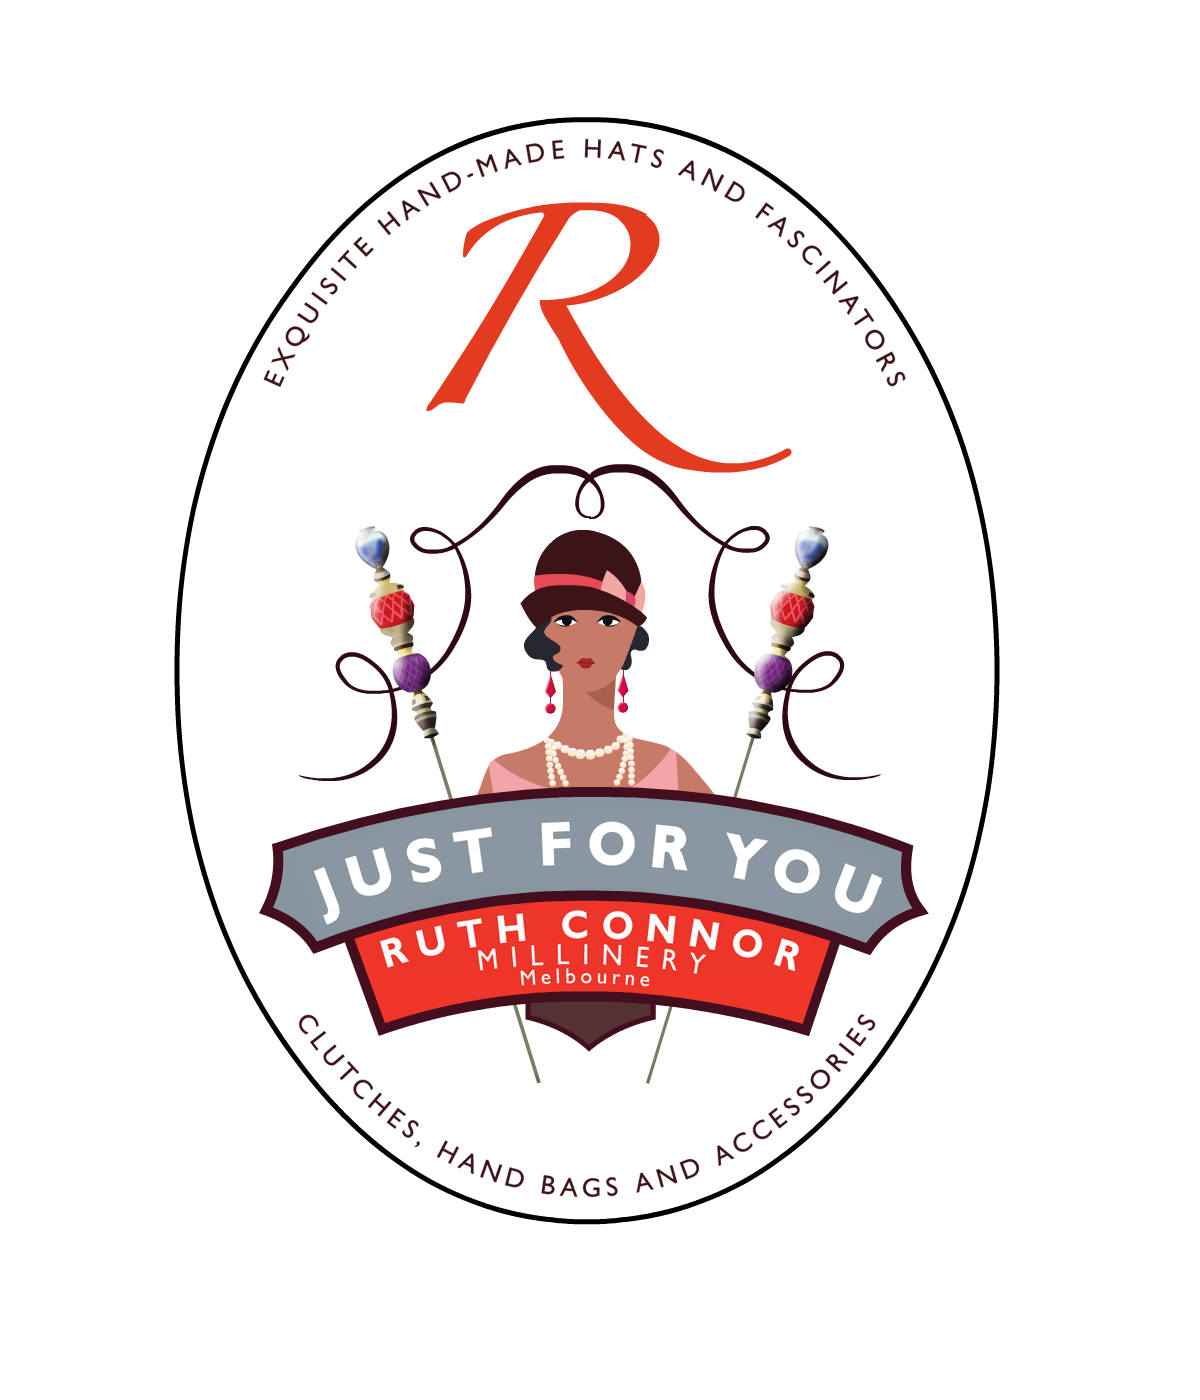 Just For You by Ruth Connor